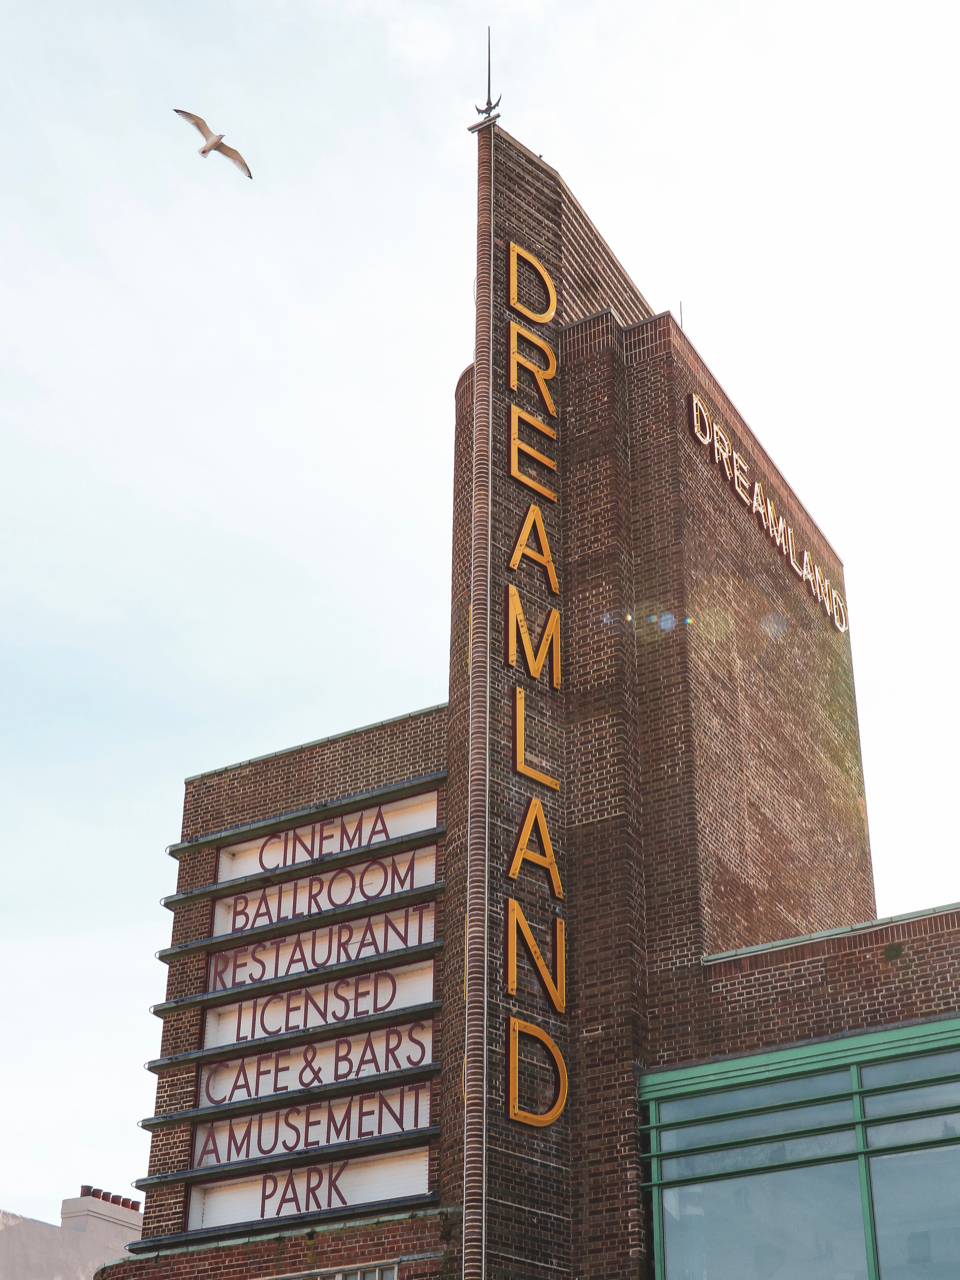 The Dreamland Building has a sign to show its services: Cinema, Ballroom, Restaurant, Cafe and Bars, Amusement Park - One Day in Margate